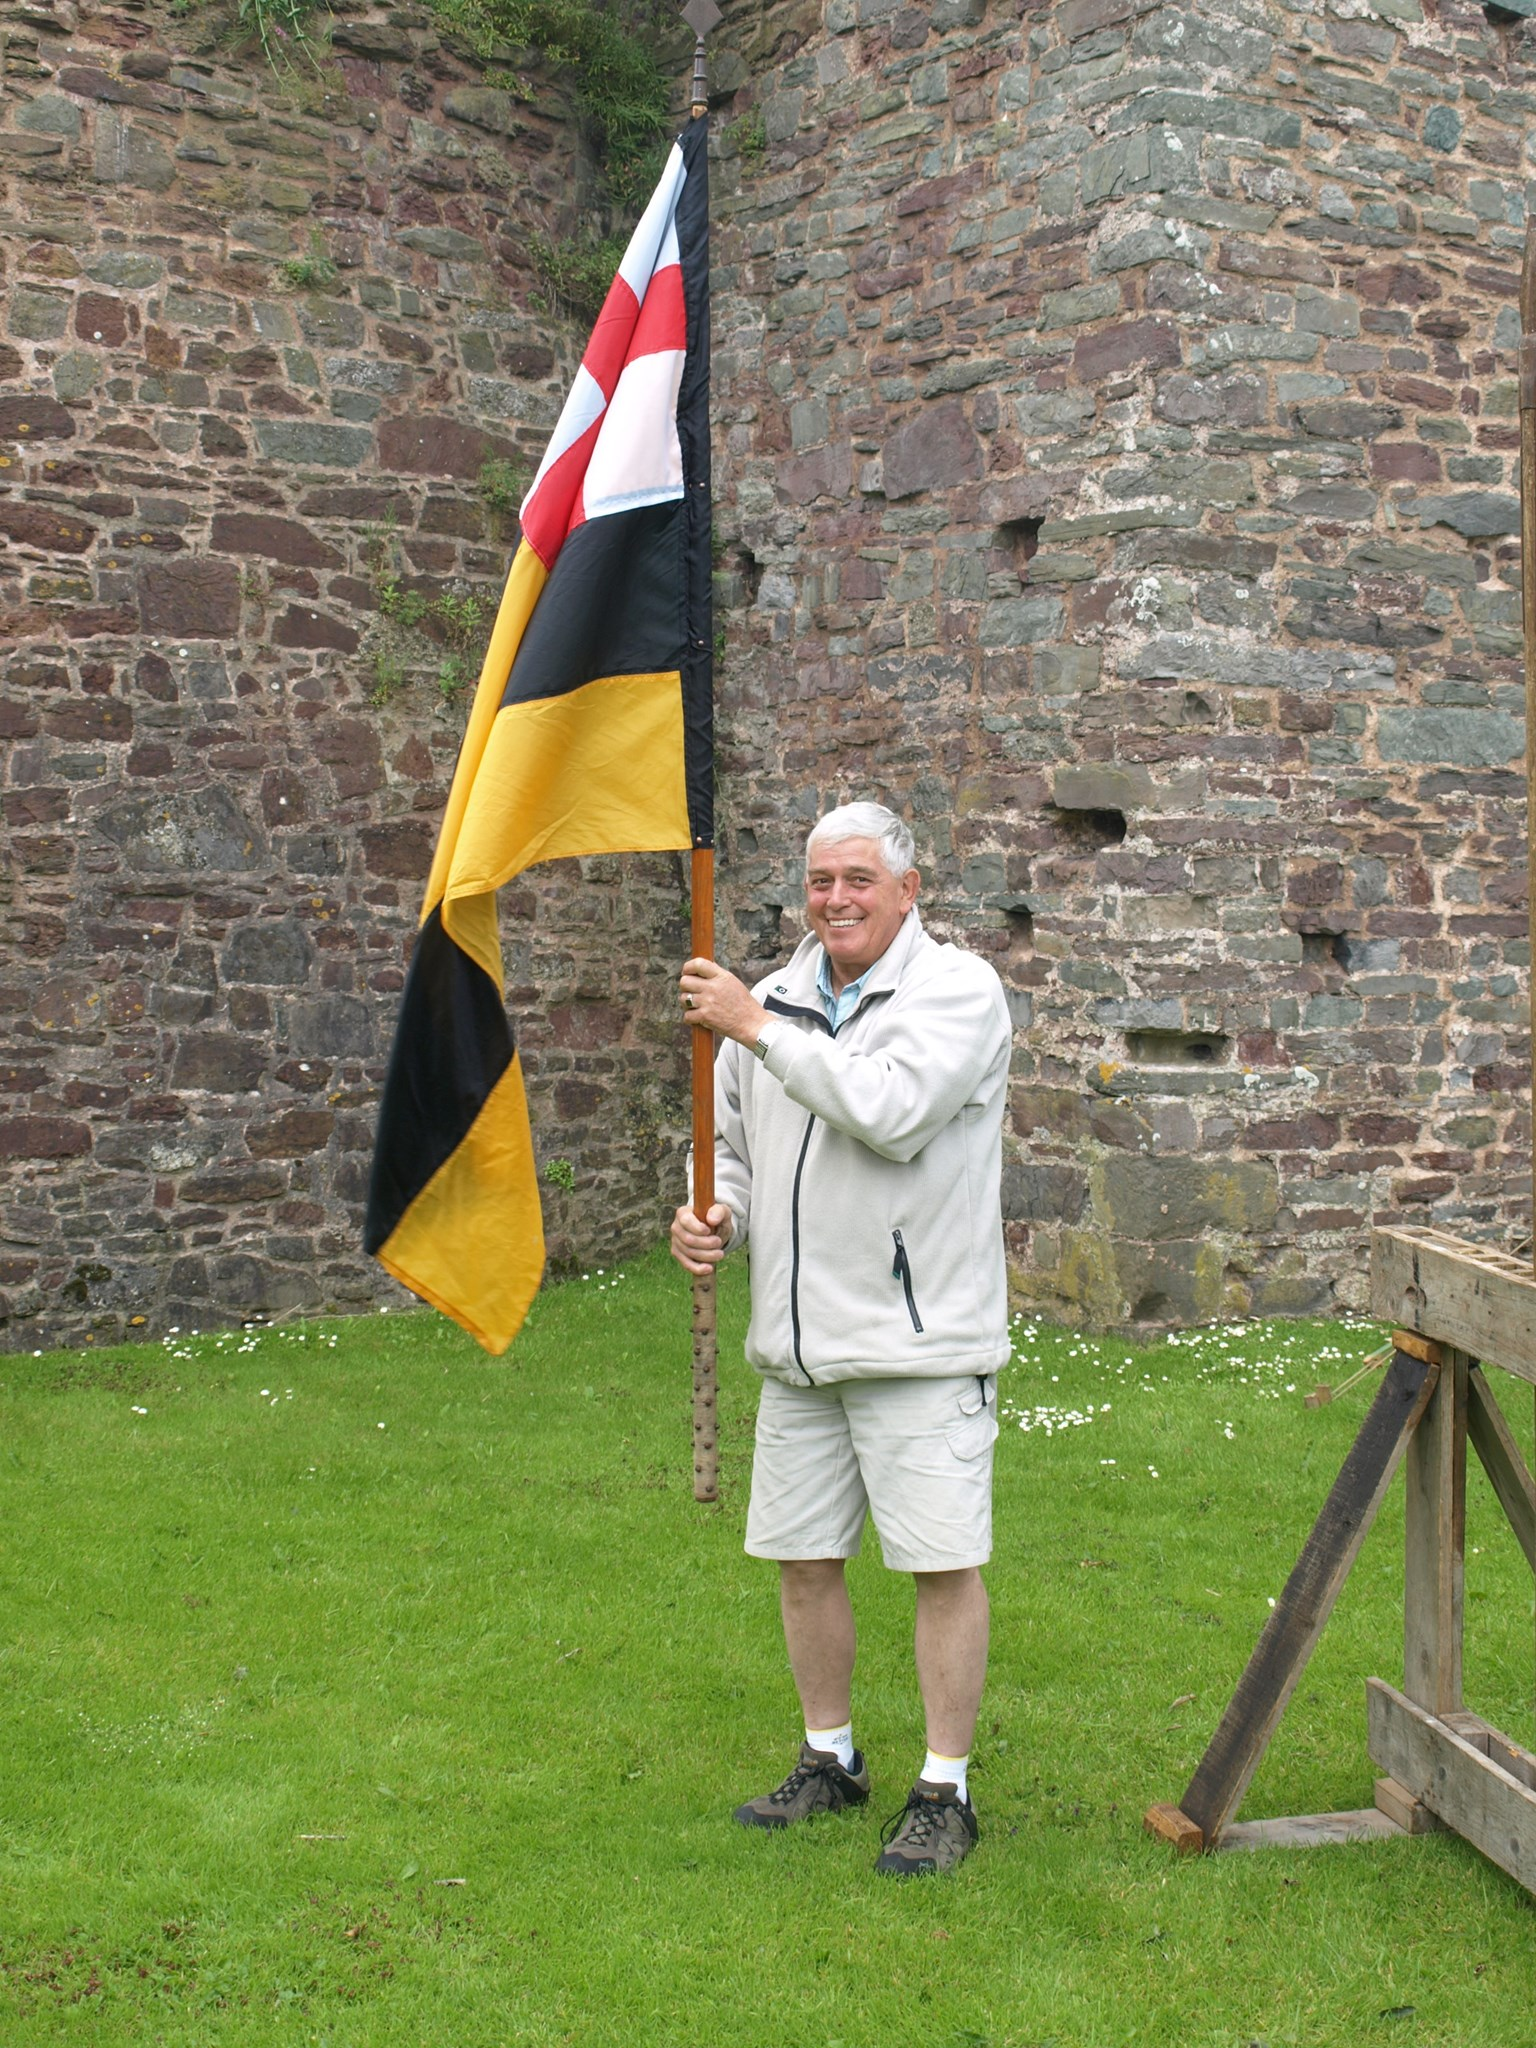 Tony flying the flag at Laugharne Castle!